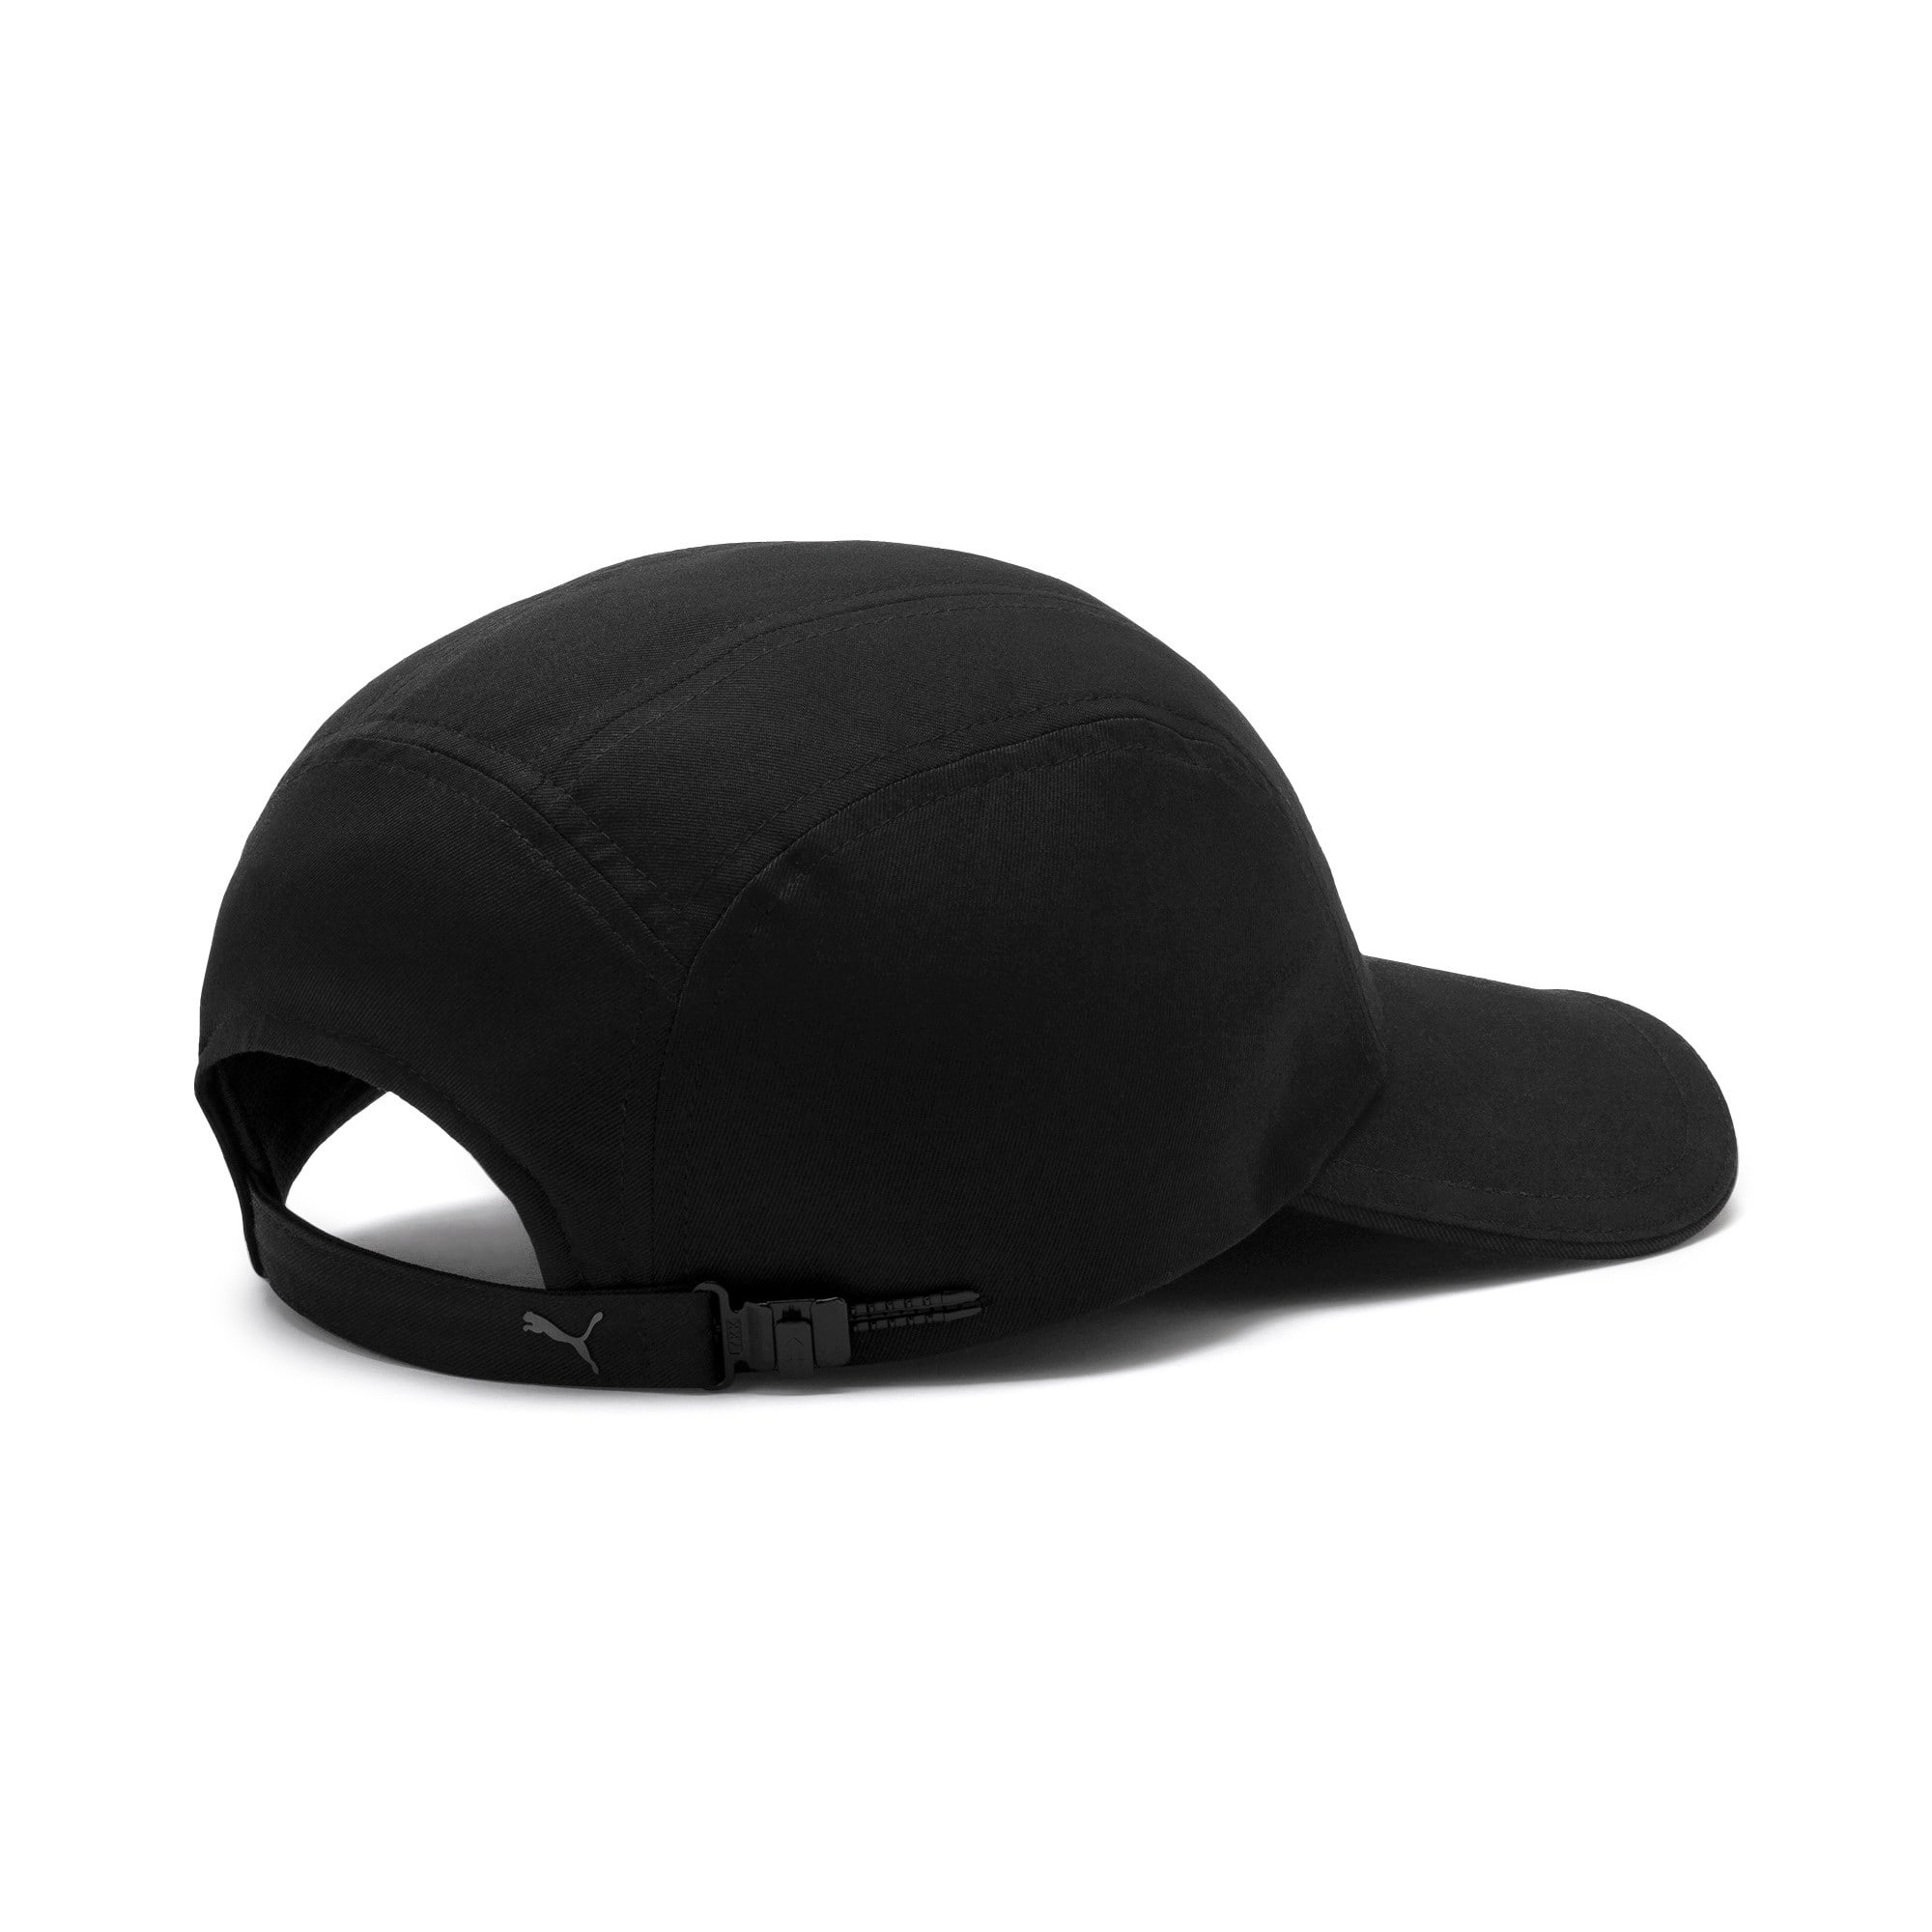 Thumbnail 3 of Curved Five Panel Cap, Puma Black, medium-IND